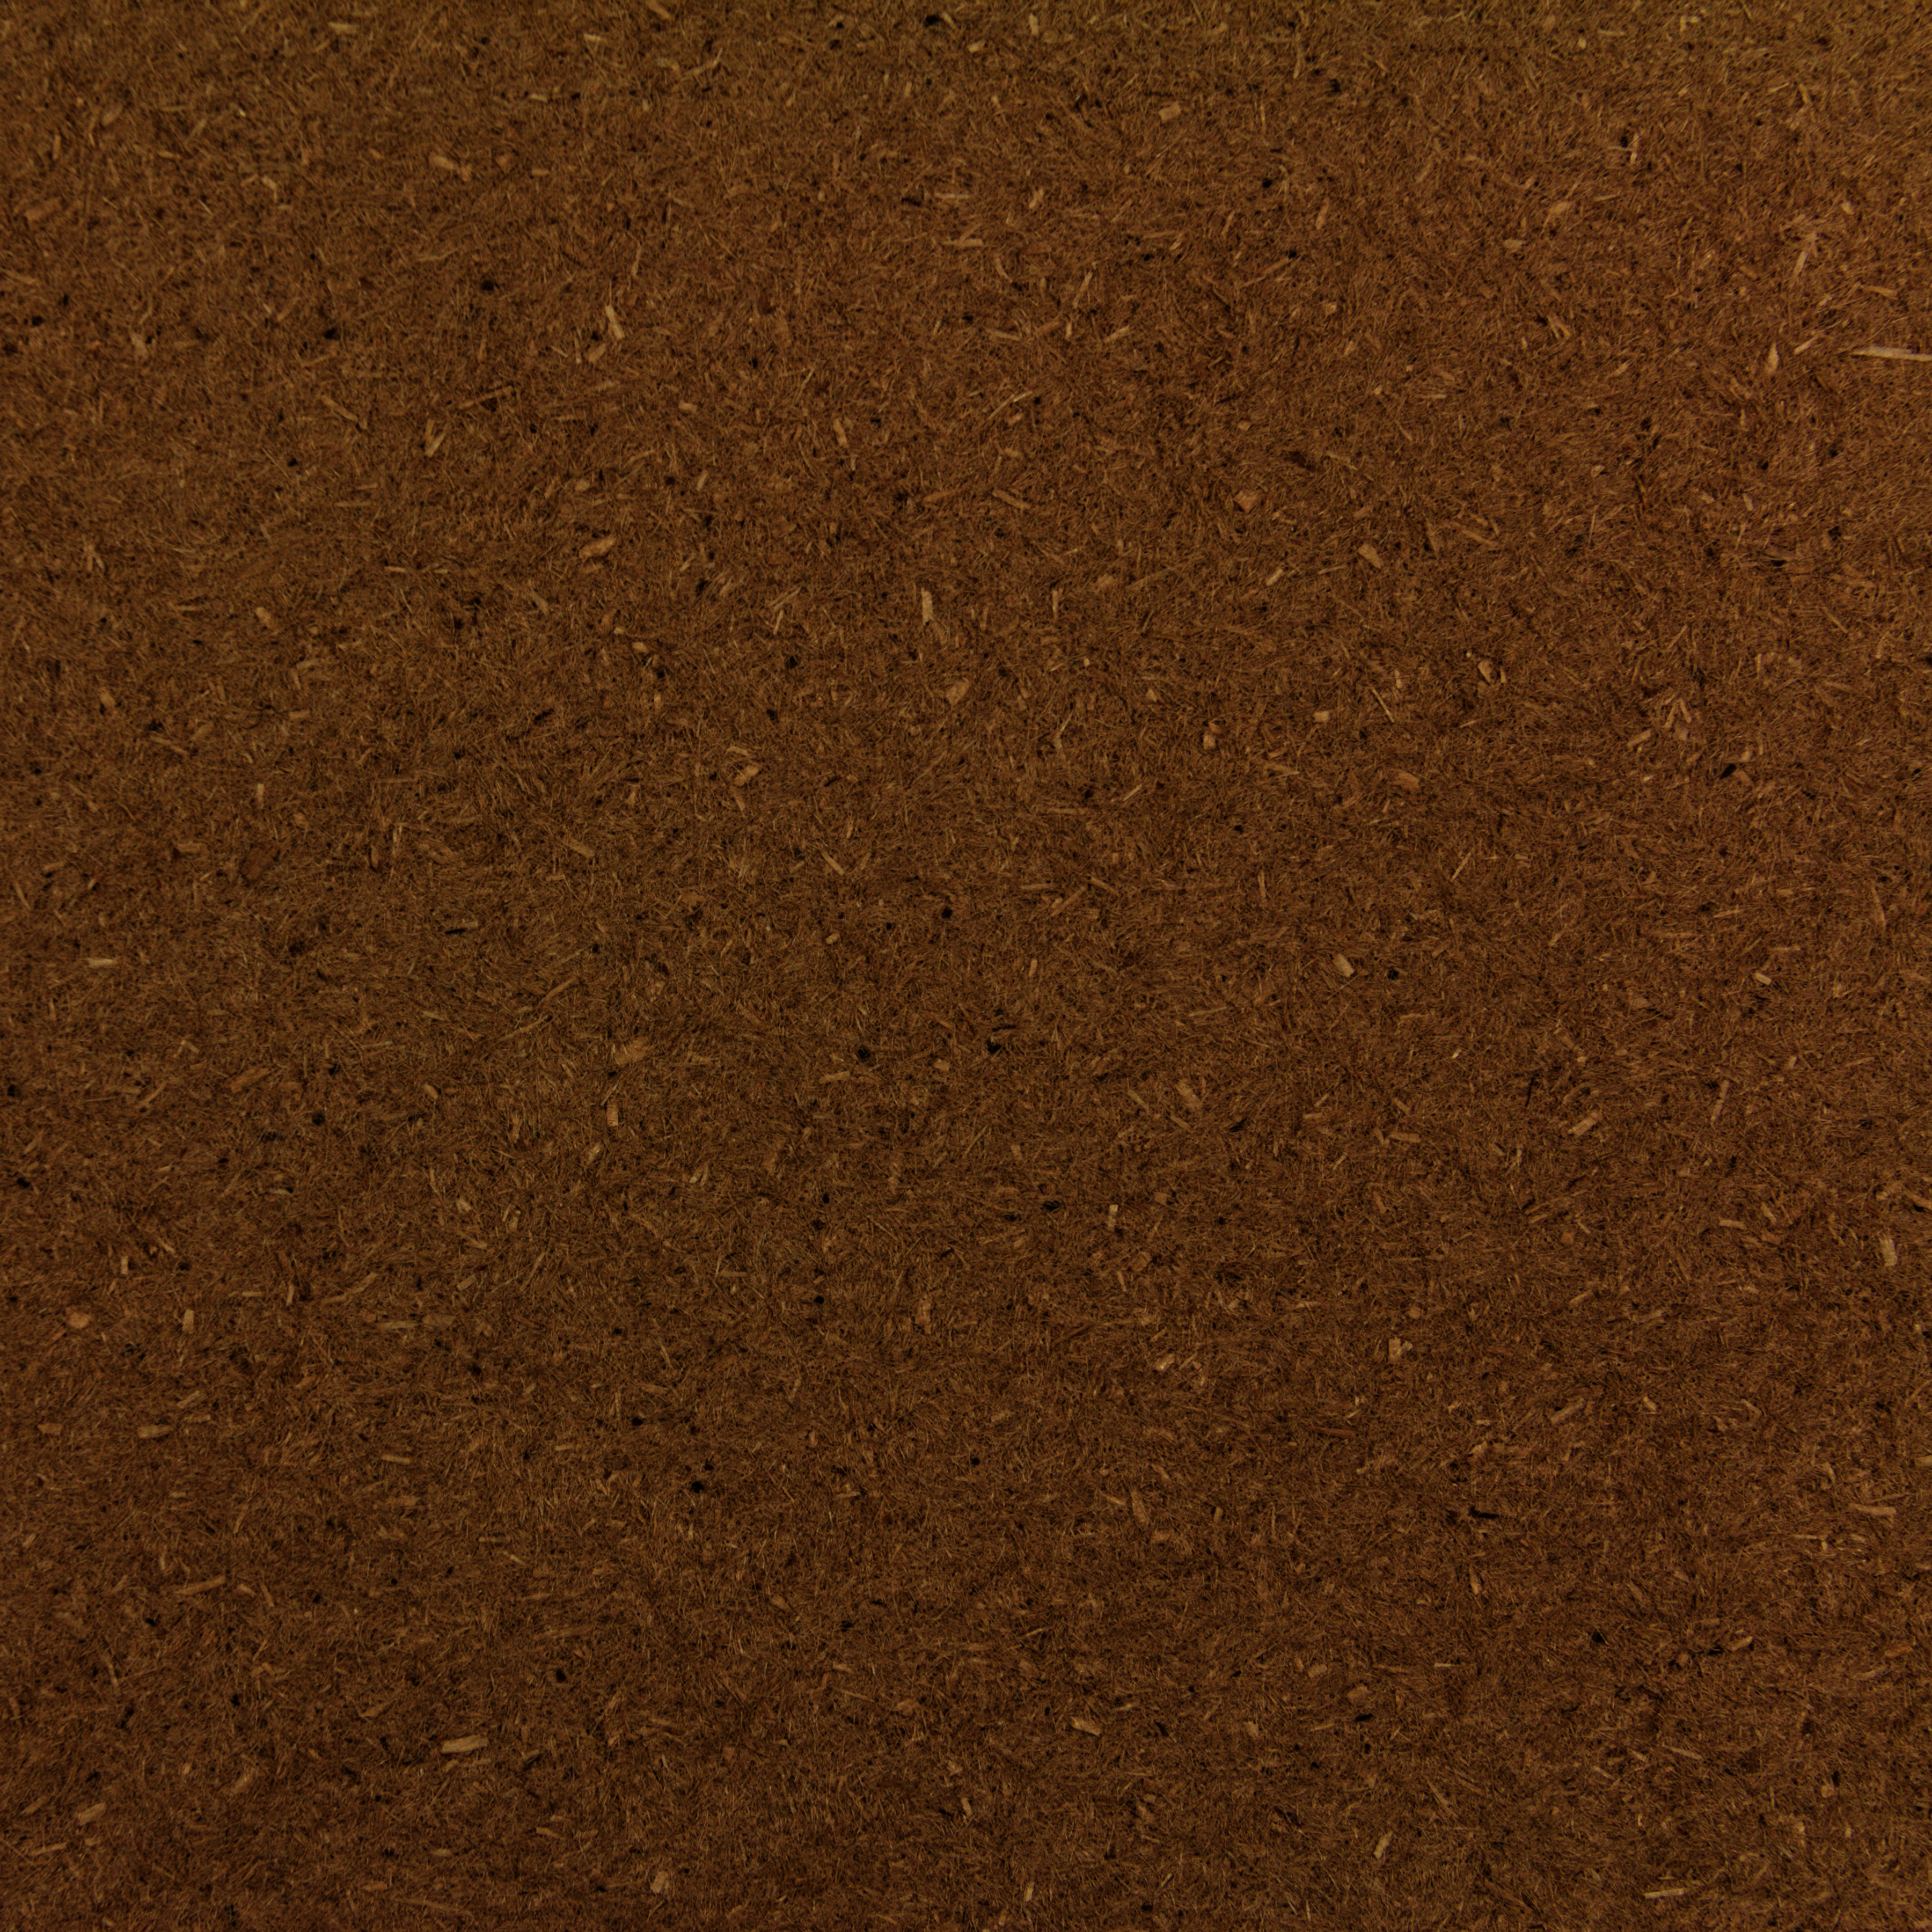 Brown Paper Texture, Paper, Brown, Texture, HQ Photo